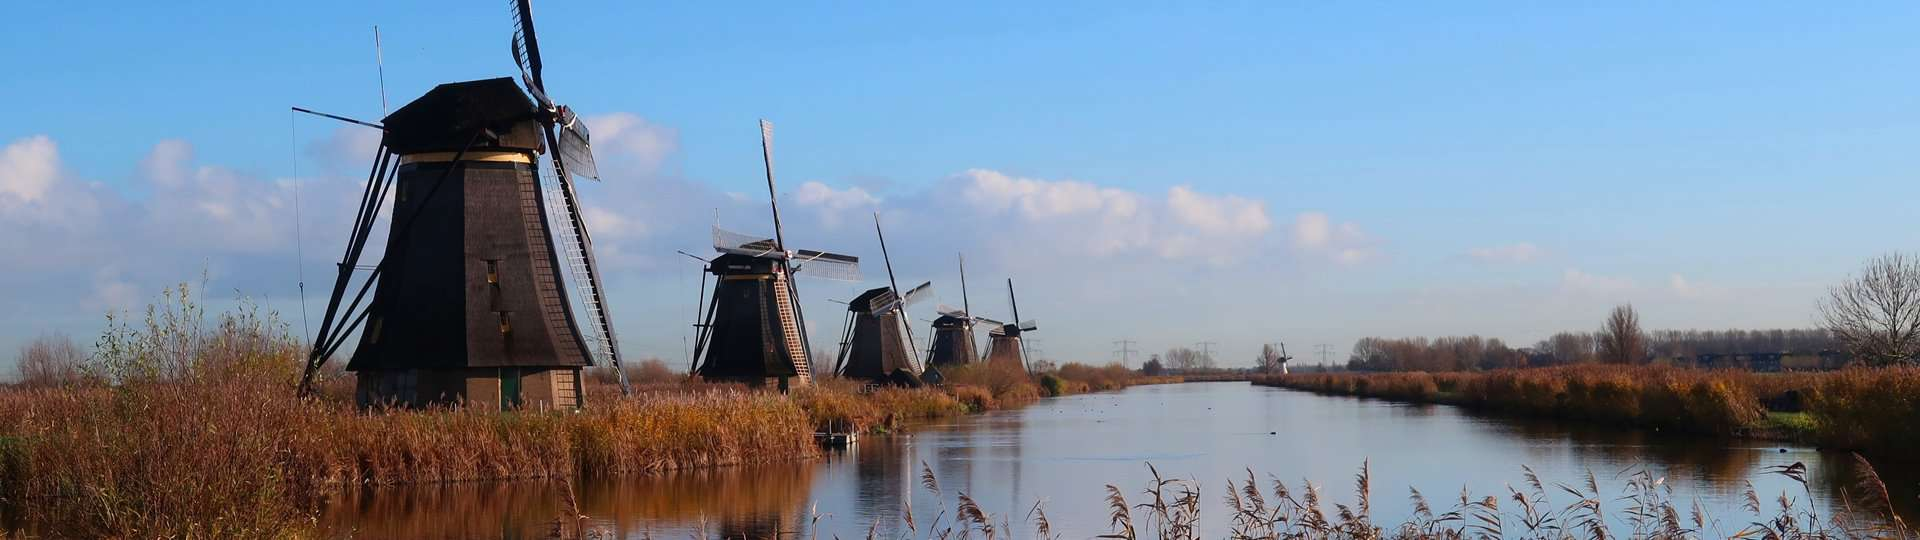 Archaeology Travel   Exploring the Past in the Netherlands   6